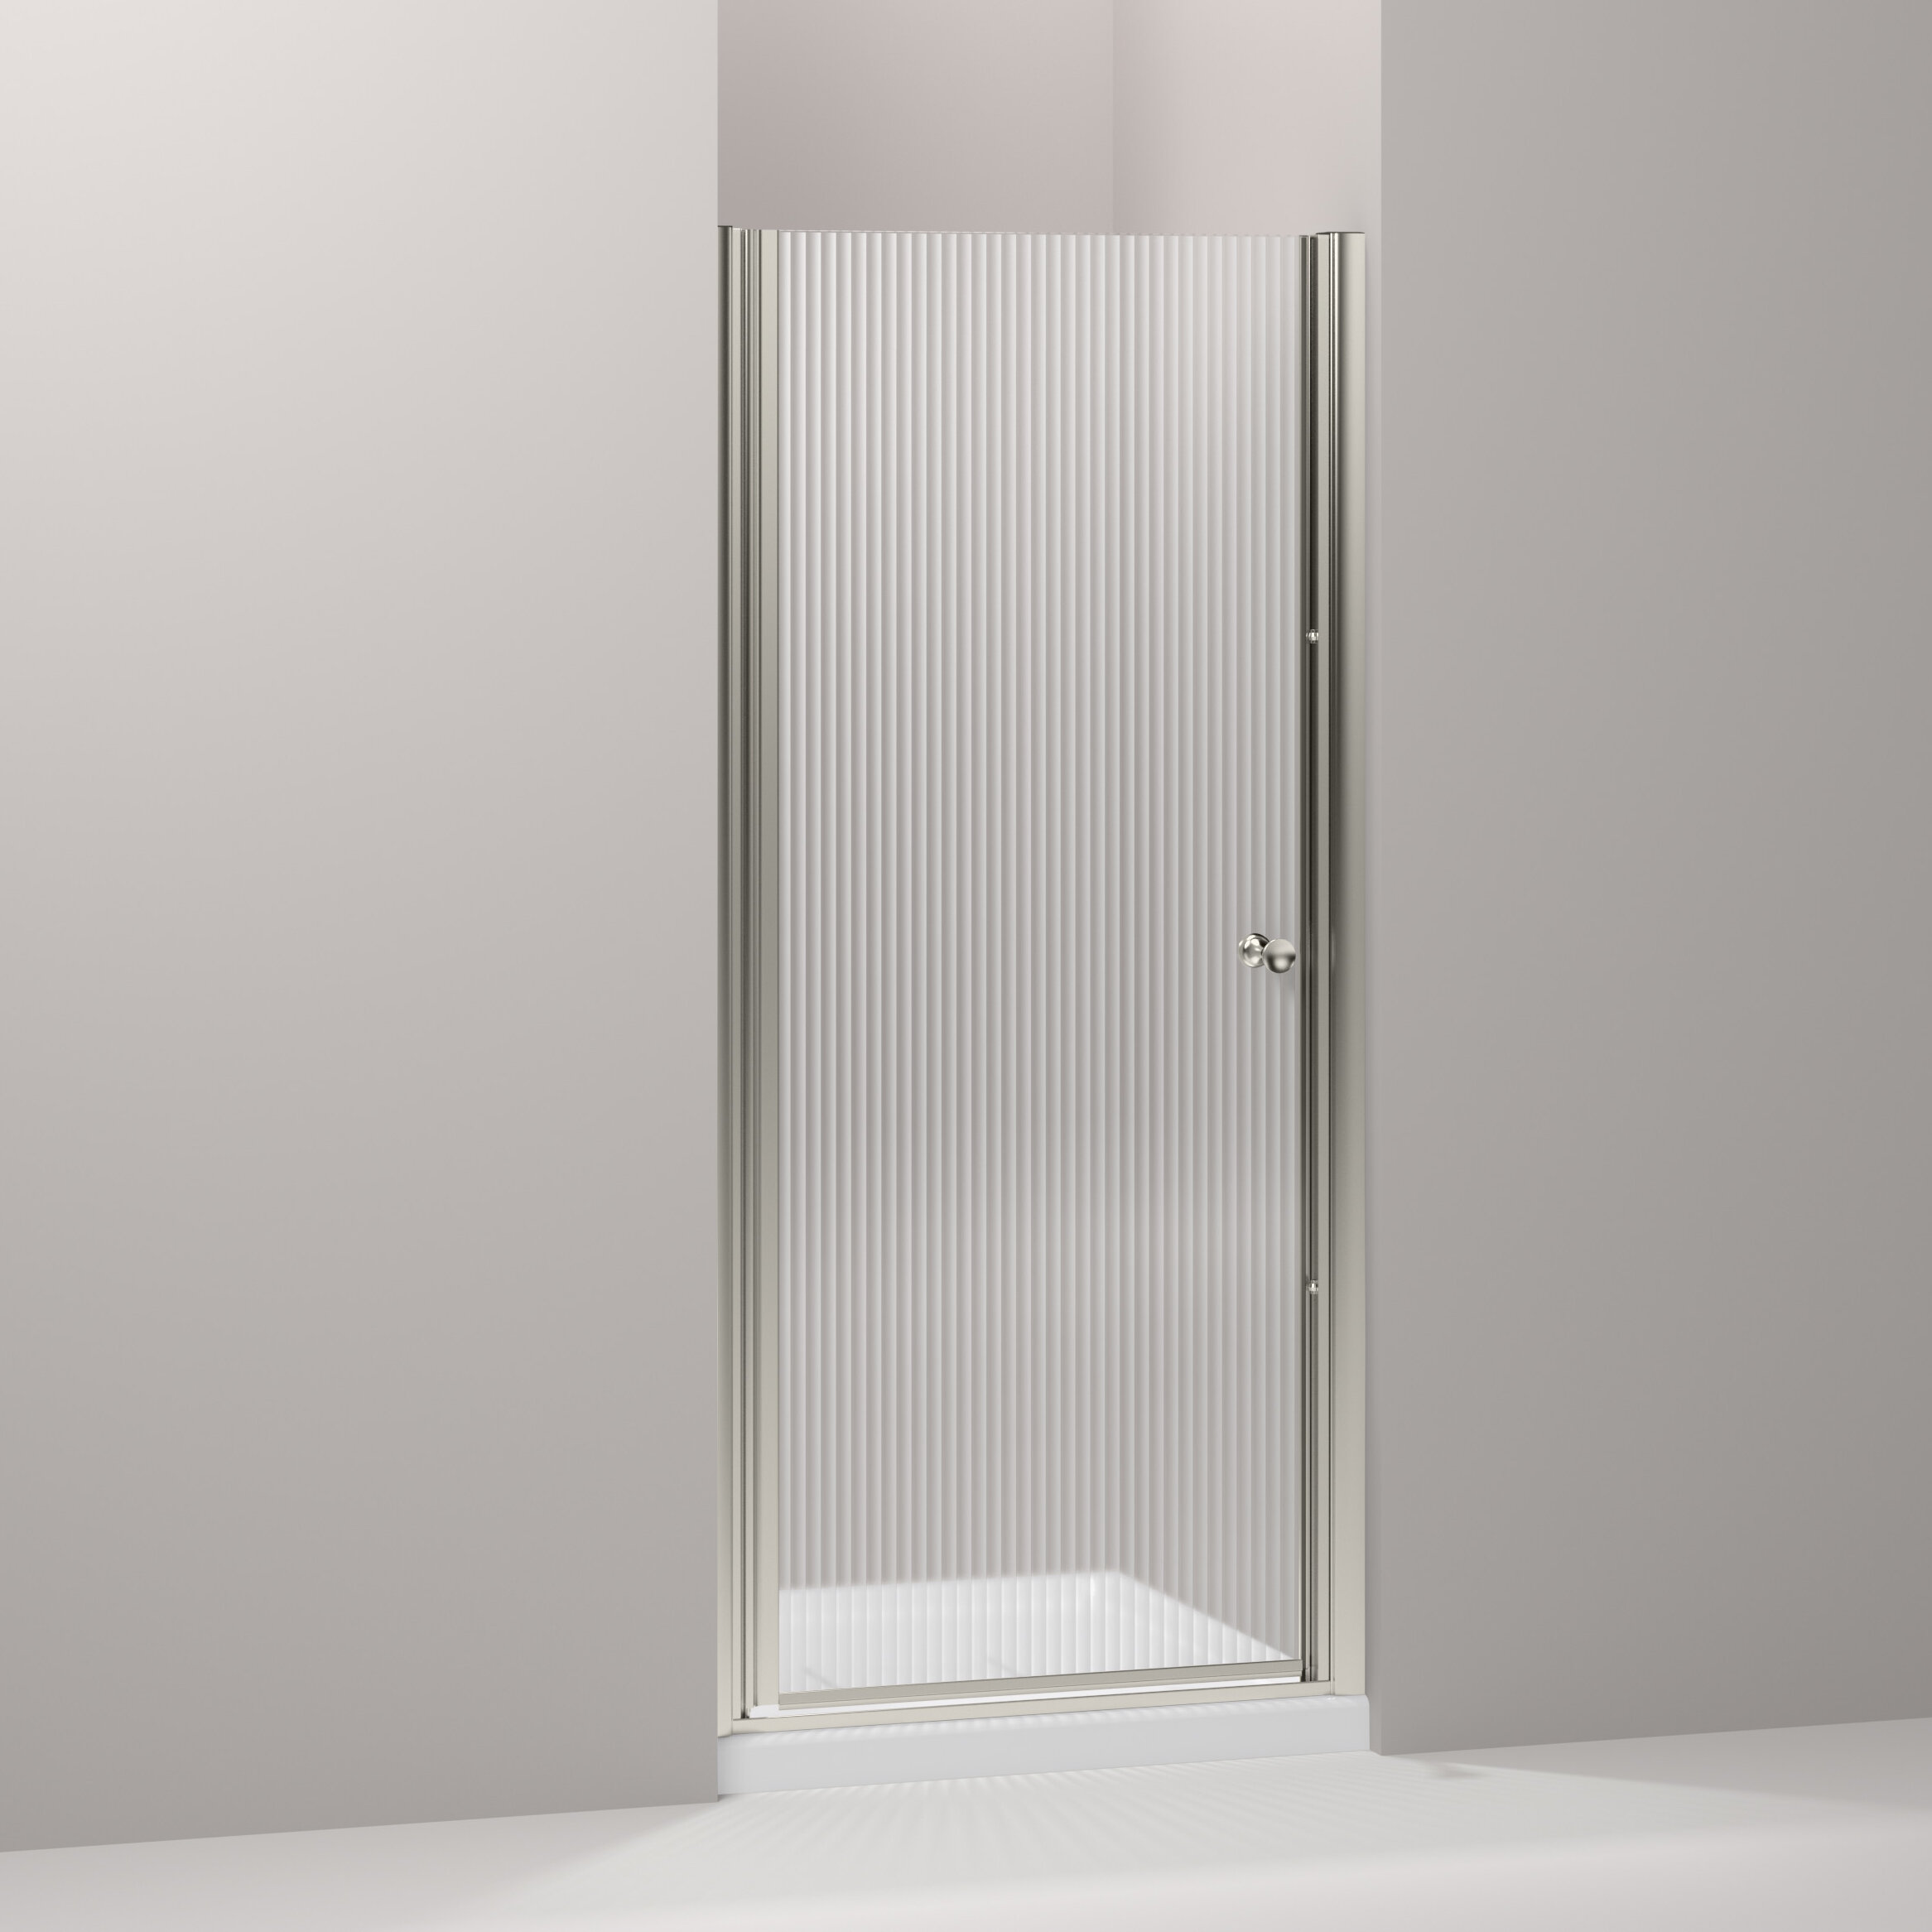 Fluence 31 5 X 65 5 Pivot Shower Door With Cleancoat Technology